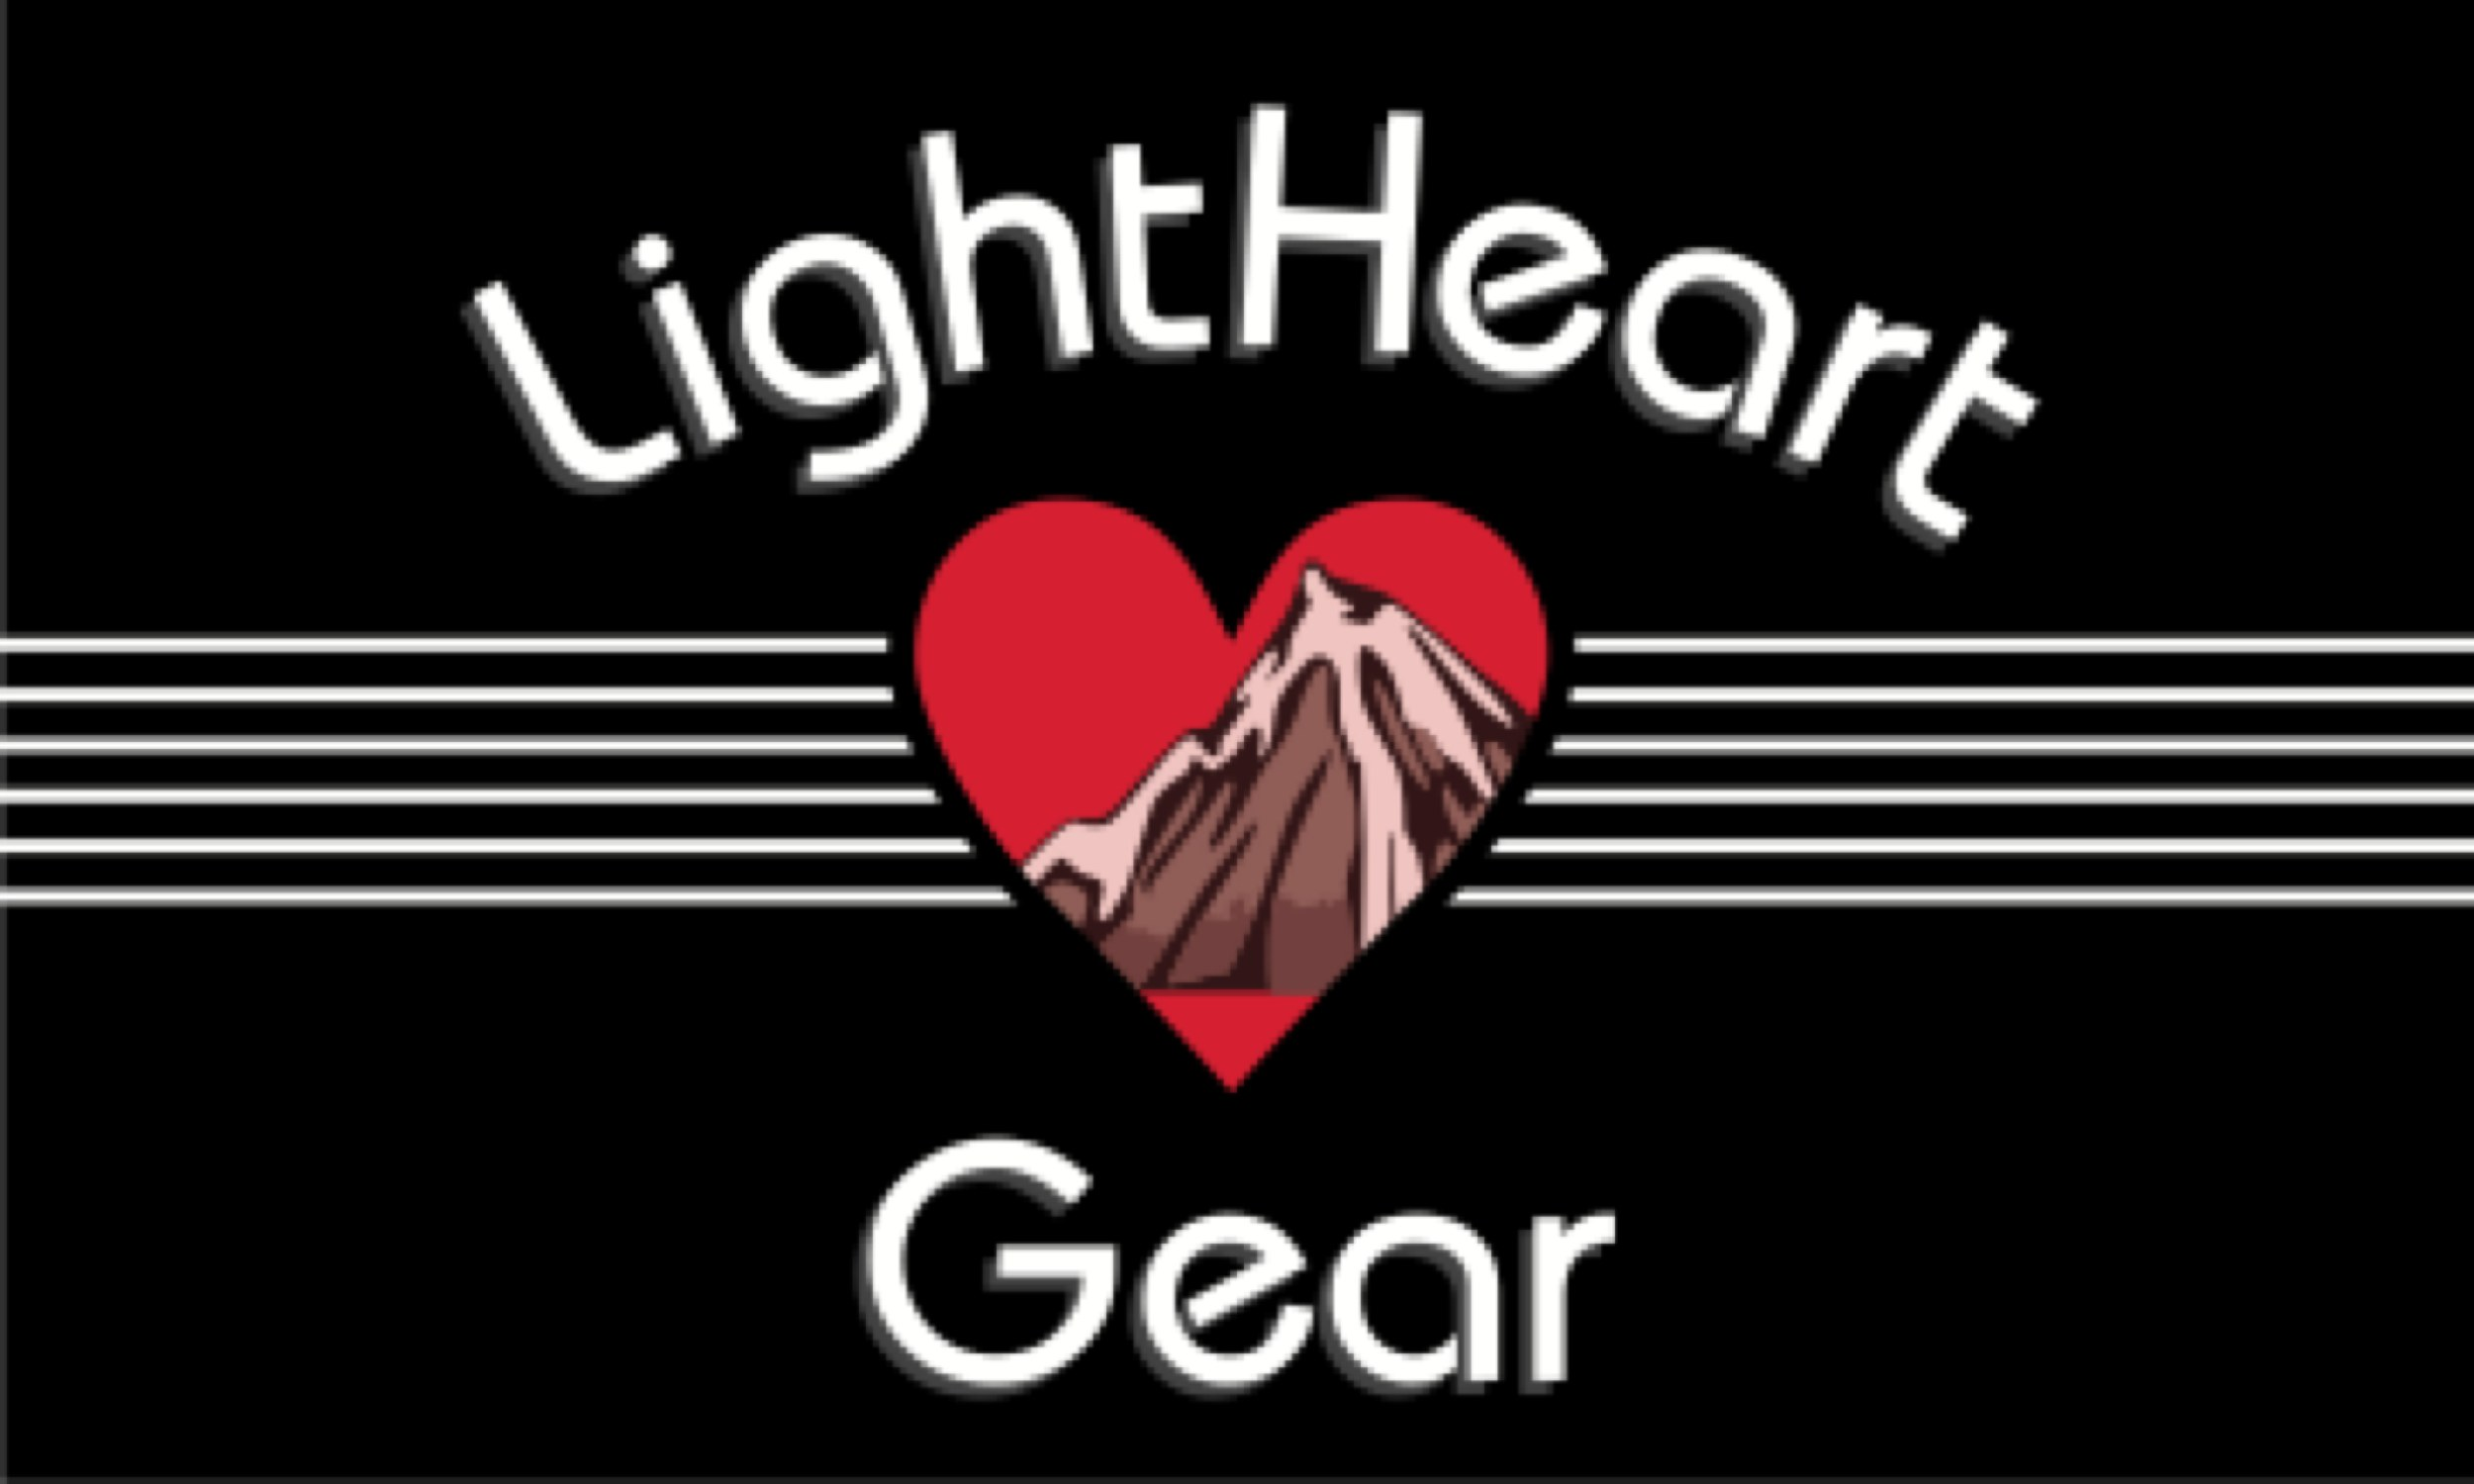 Lightheart Gear   LightHeart Gear believes in maximizing on simplicity in building it's ultralight weight backpacking tents. Founded in 2009, the company has…   Read More